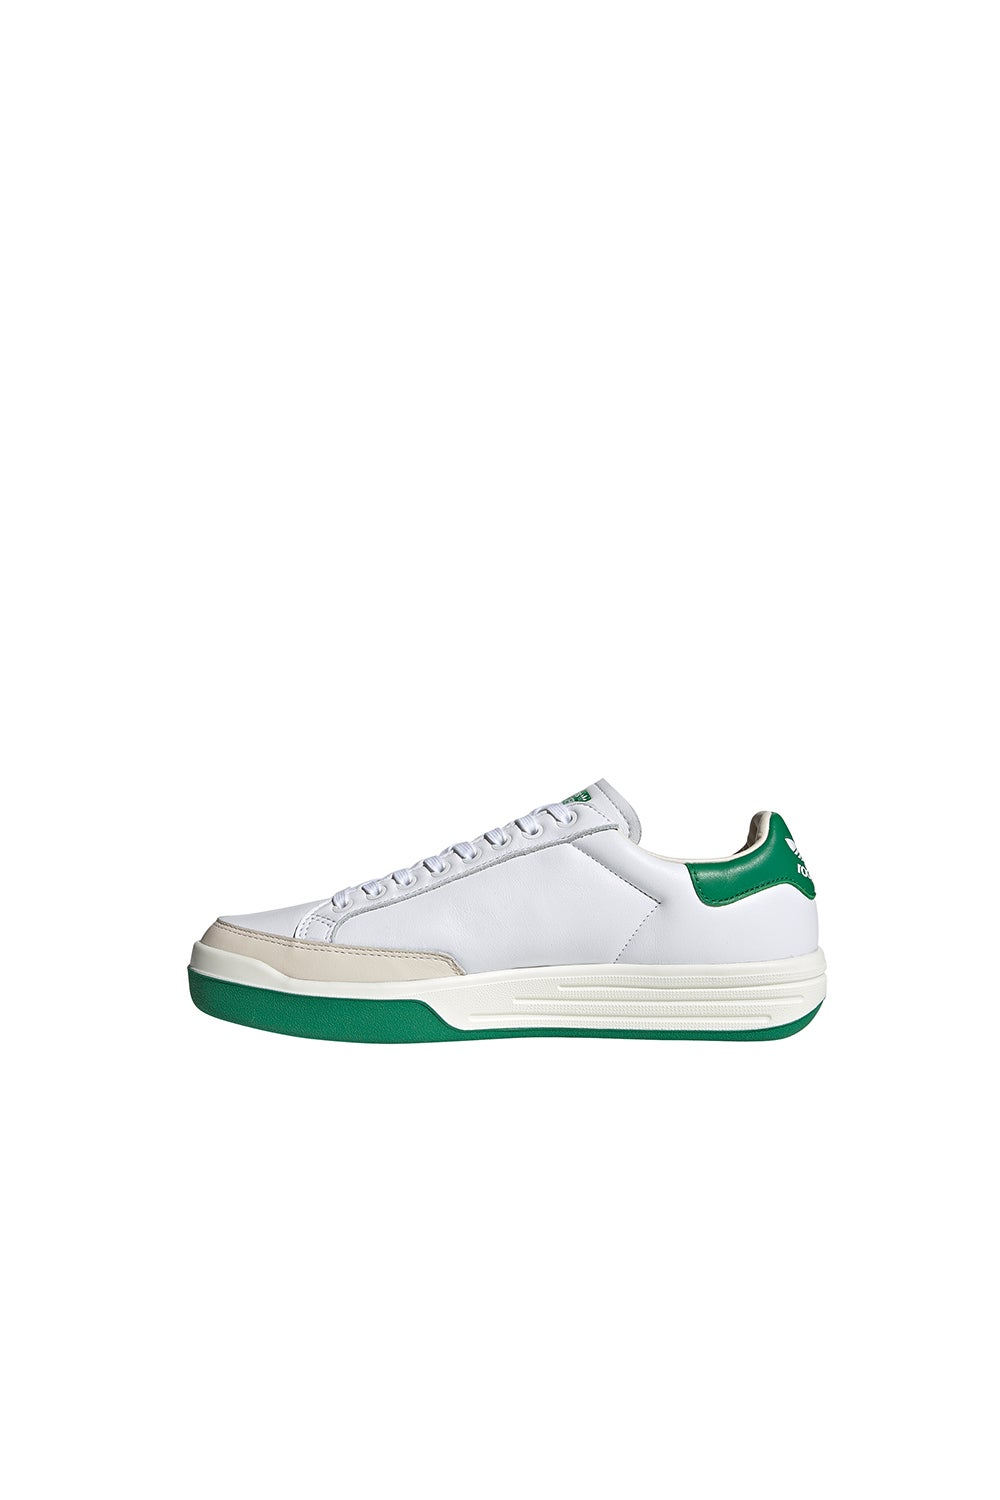 adidas Rod Laver FTWR White/Green/Off White